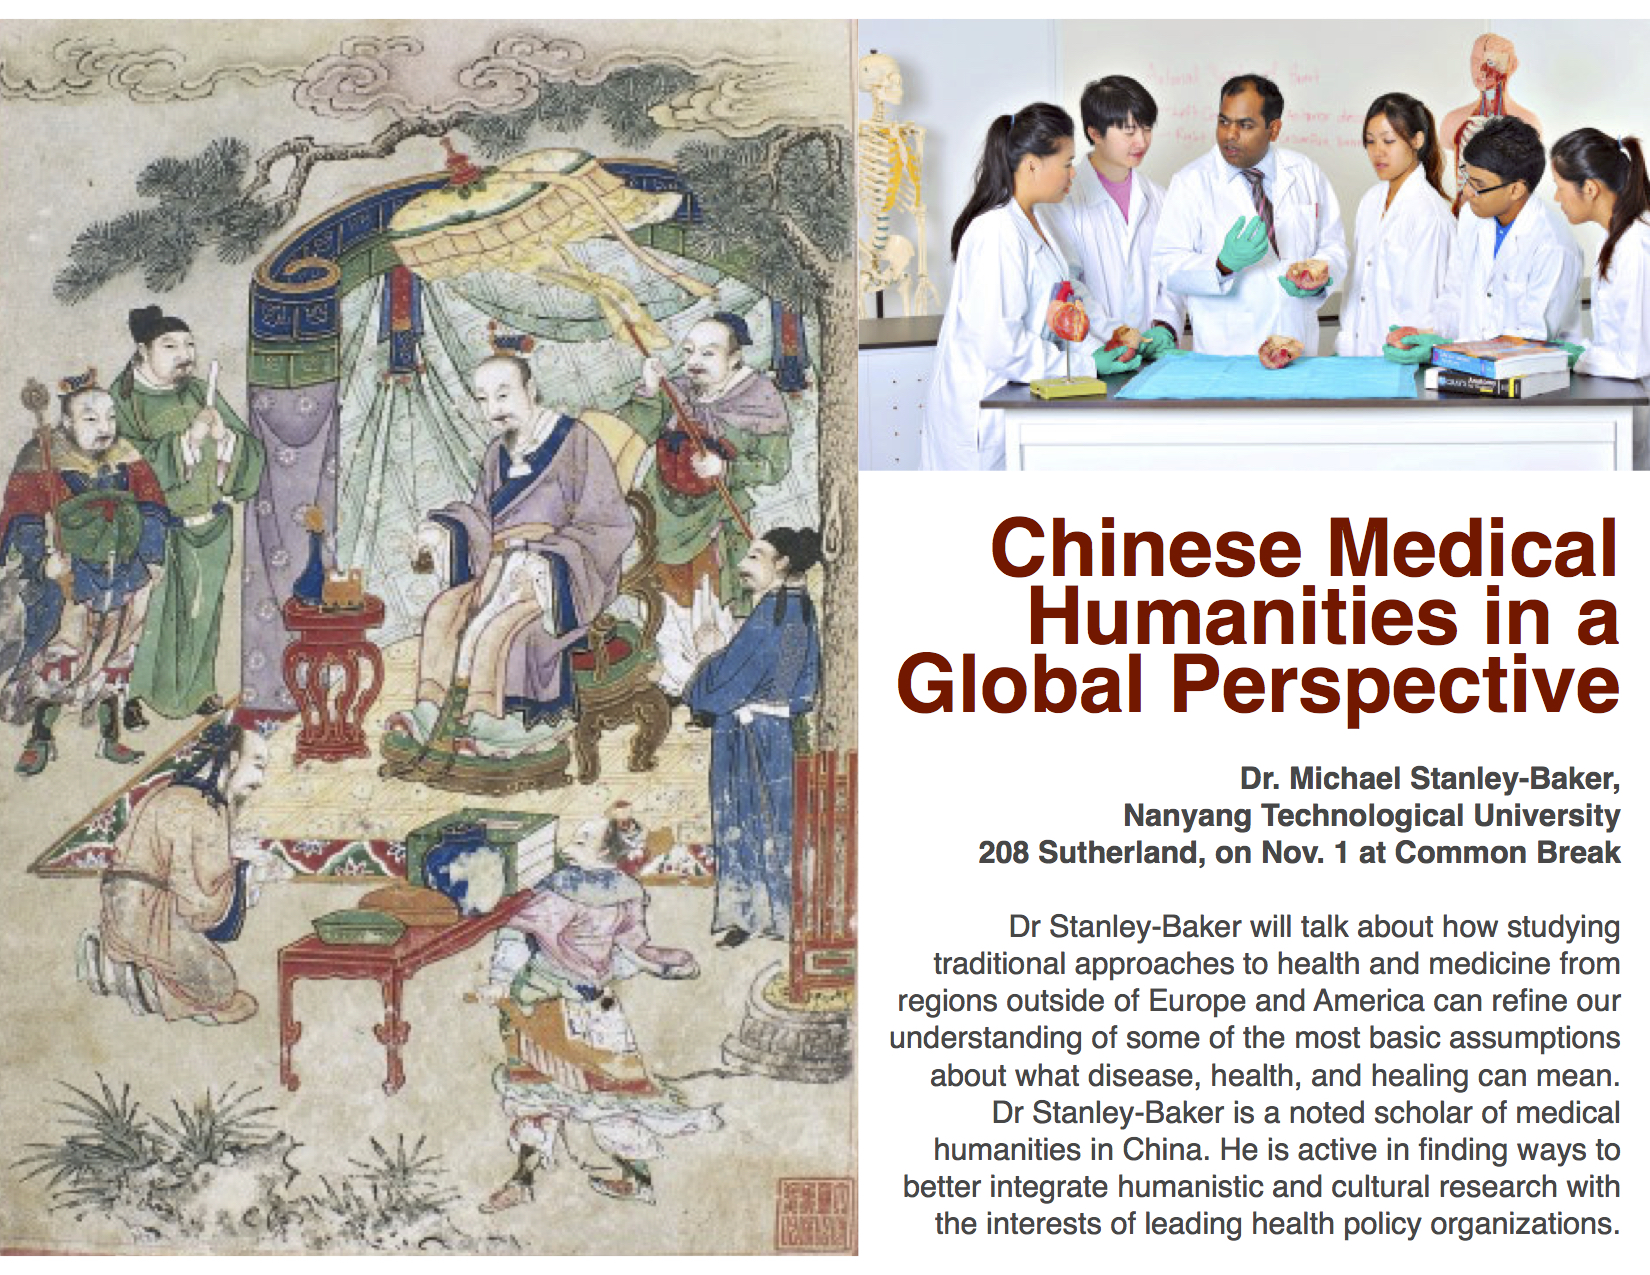 globalisation a study of traditional communities Globalisation and the study of society week 5 cultivation supported larger communities non-industrial or traditional societies • 6,000.